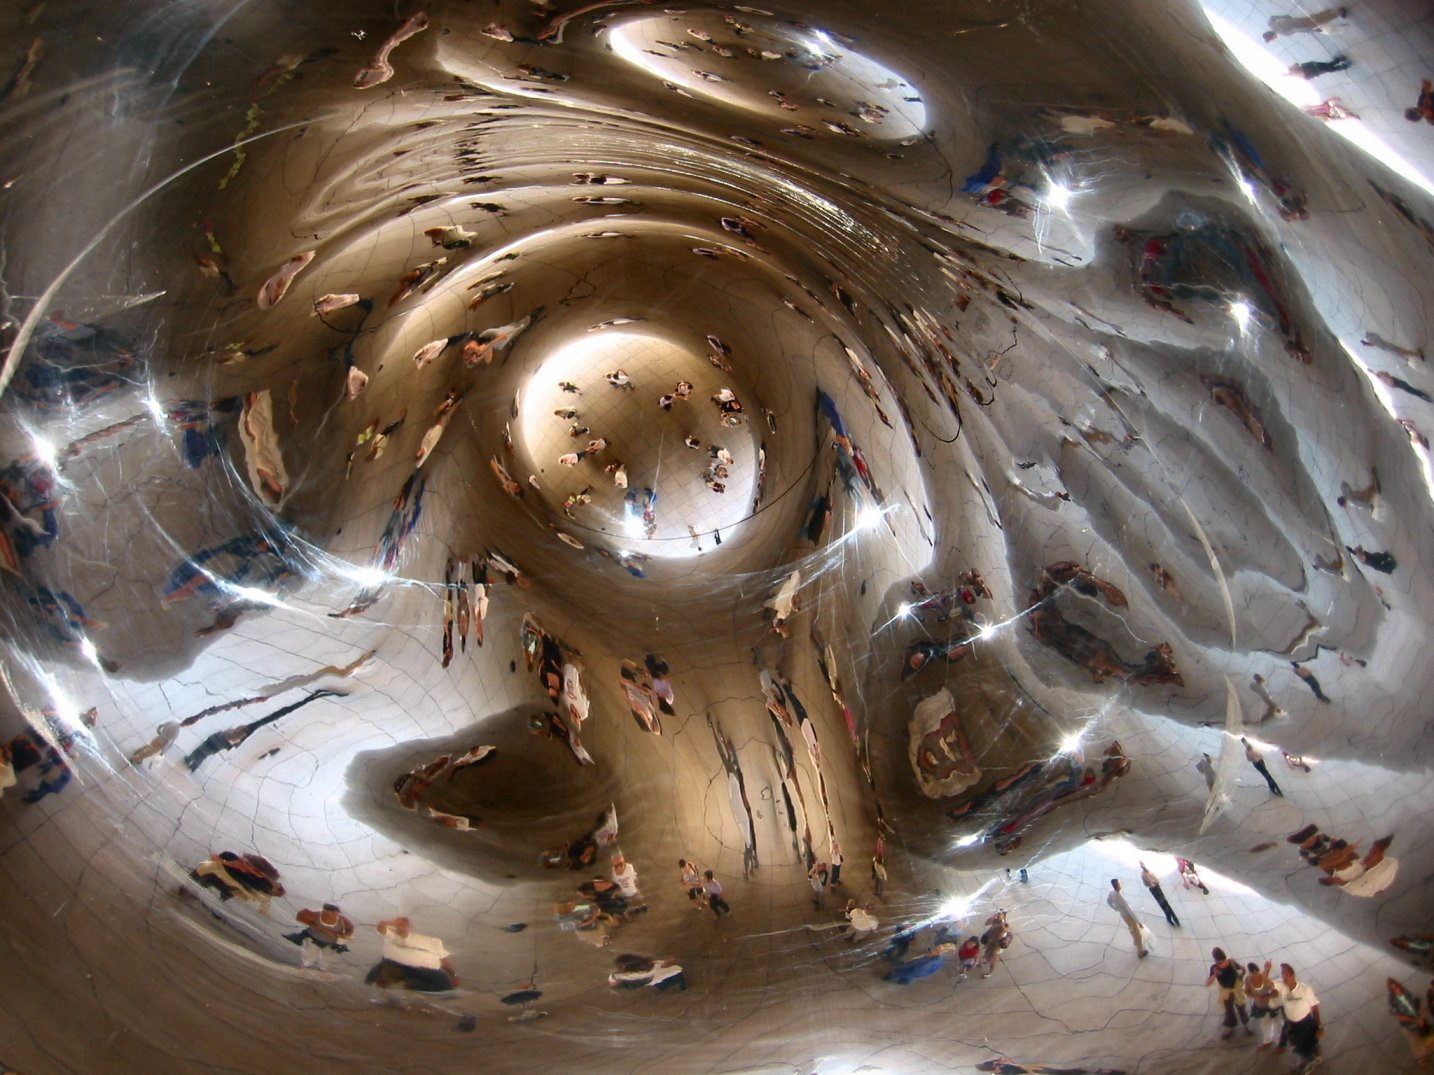 Cloud Gate - Millenium Park Chicago - August 2007 - photo by Mike Fisk -- soul-amp.com